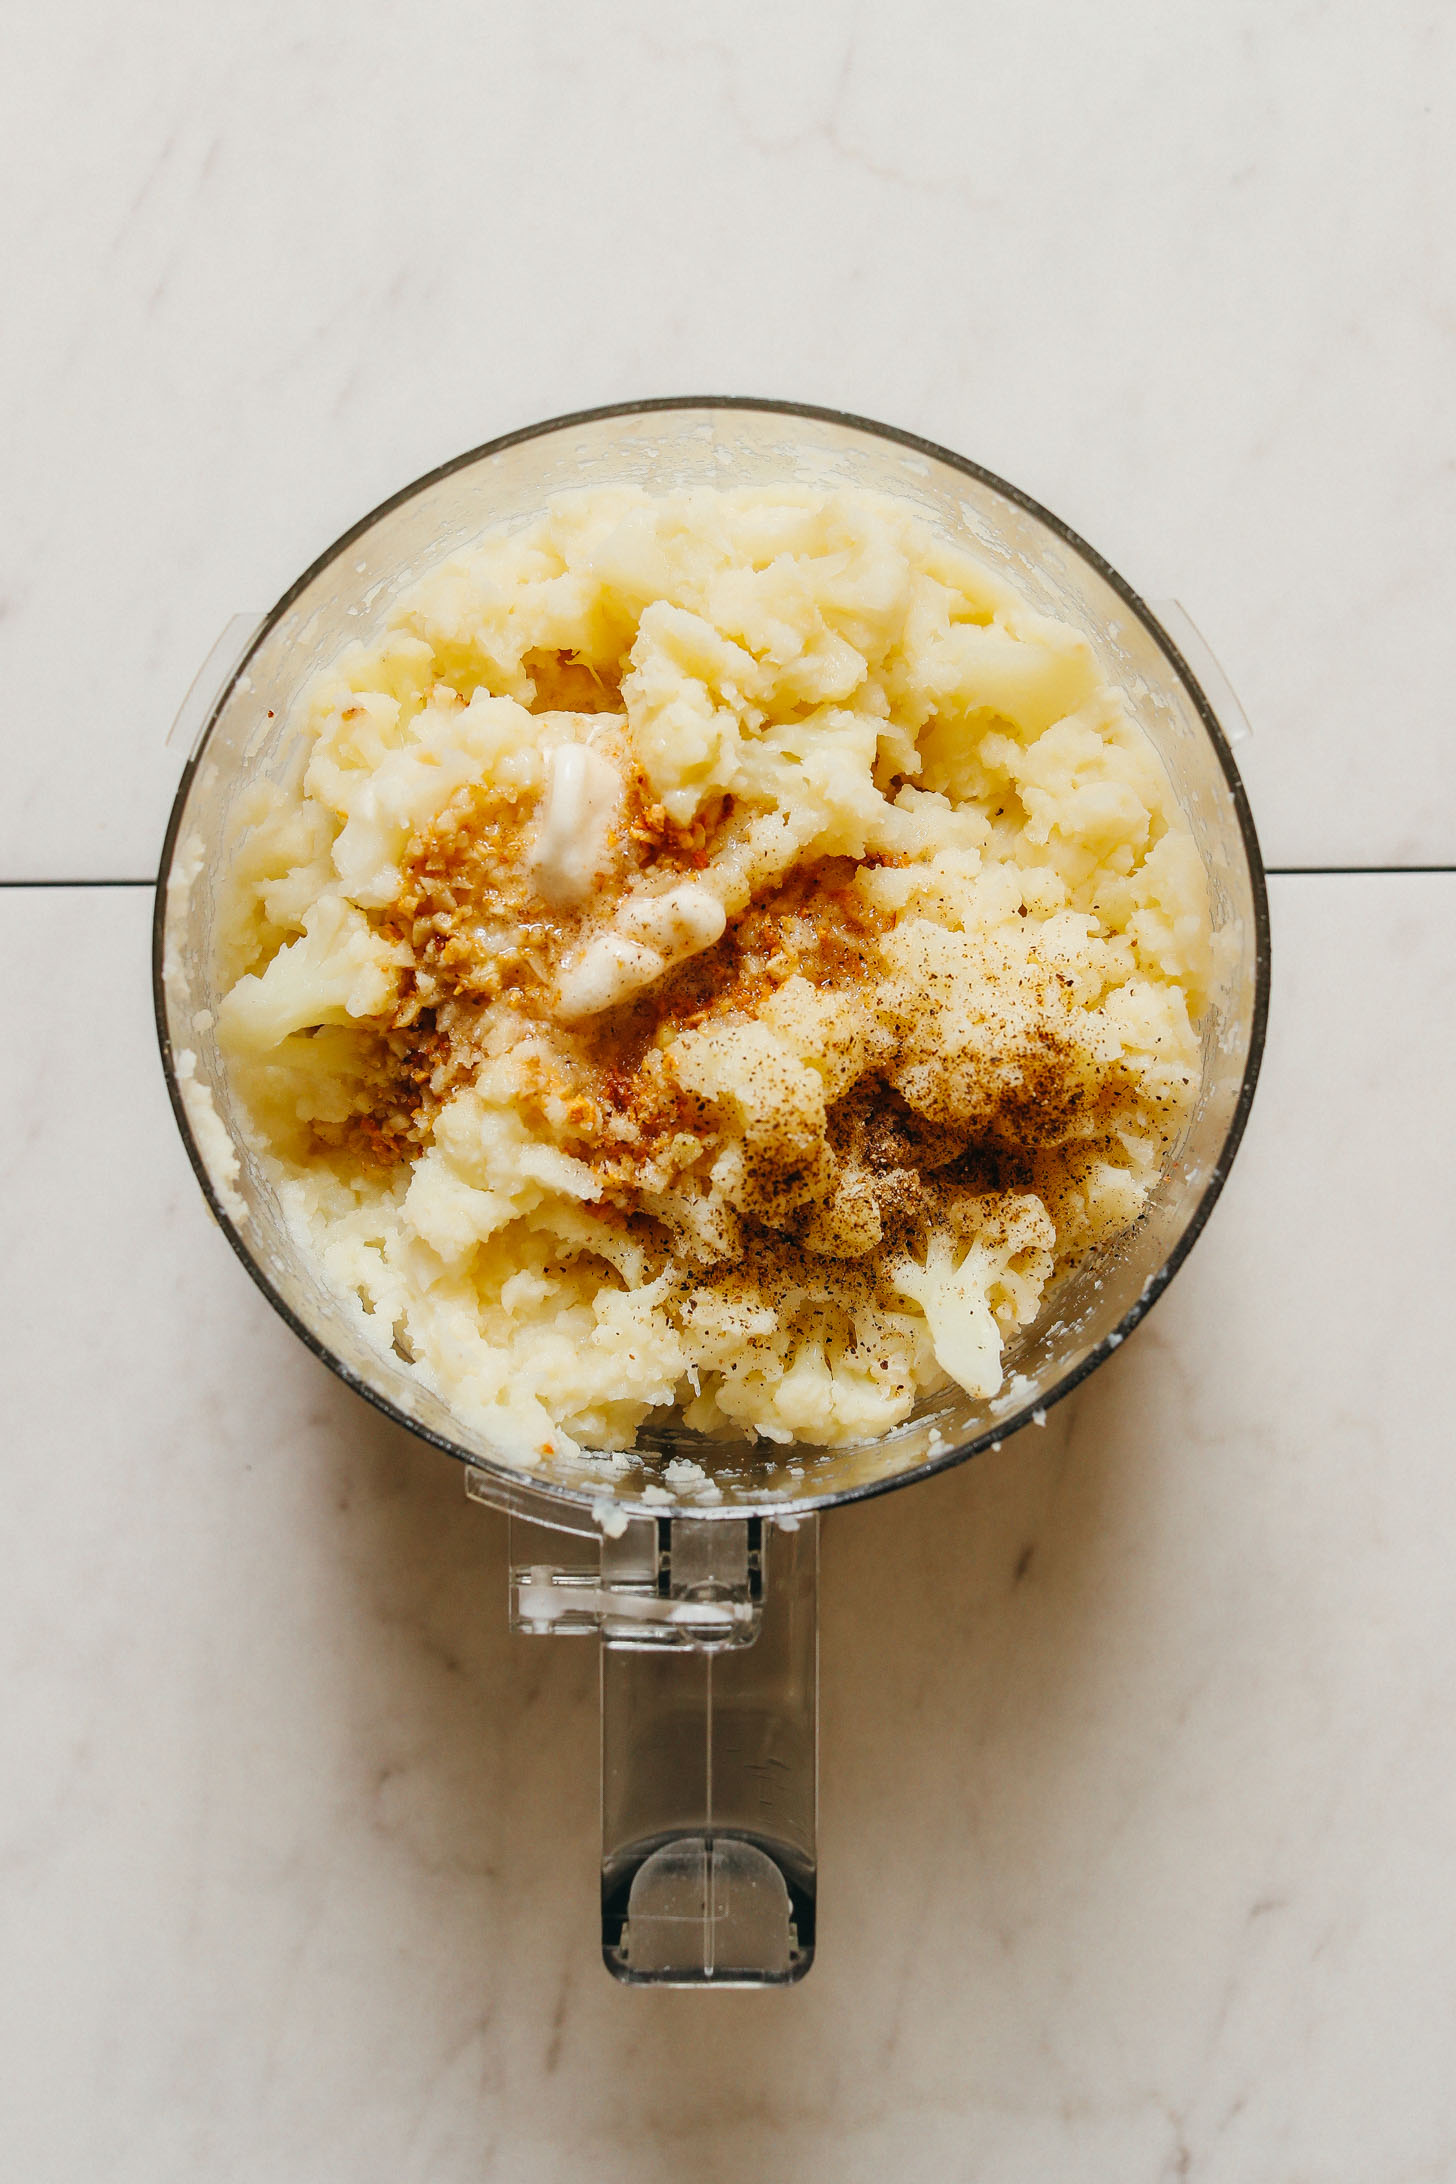 Food processor with mashed cauliflower, spices, and vegan butter for a delicious vegan Thanksgiving side recipe